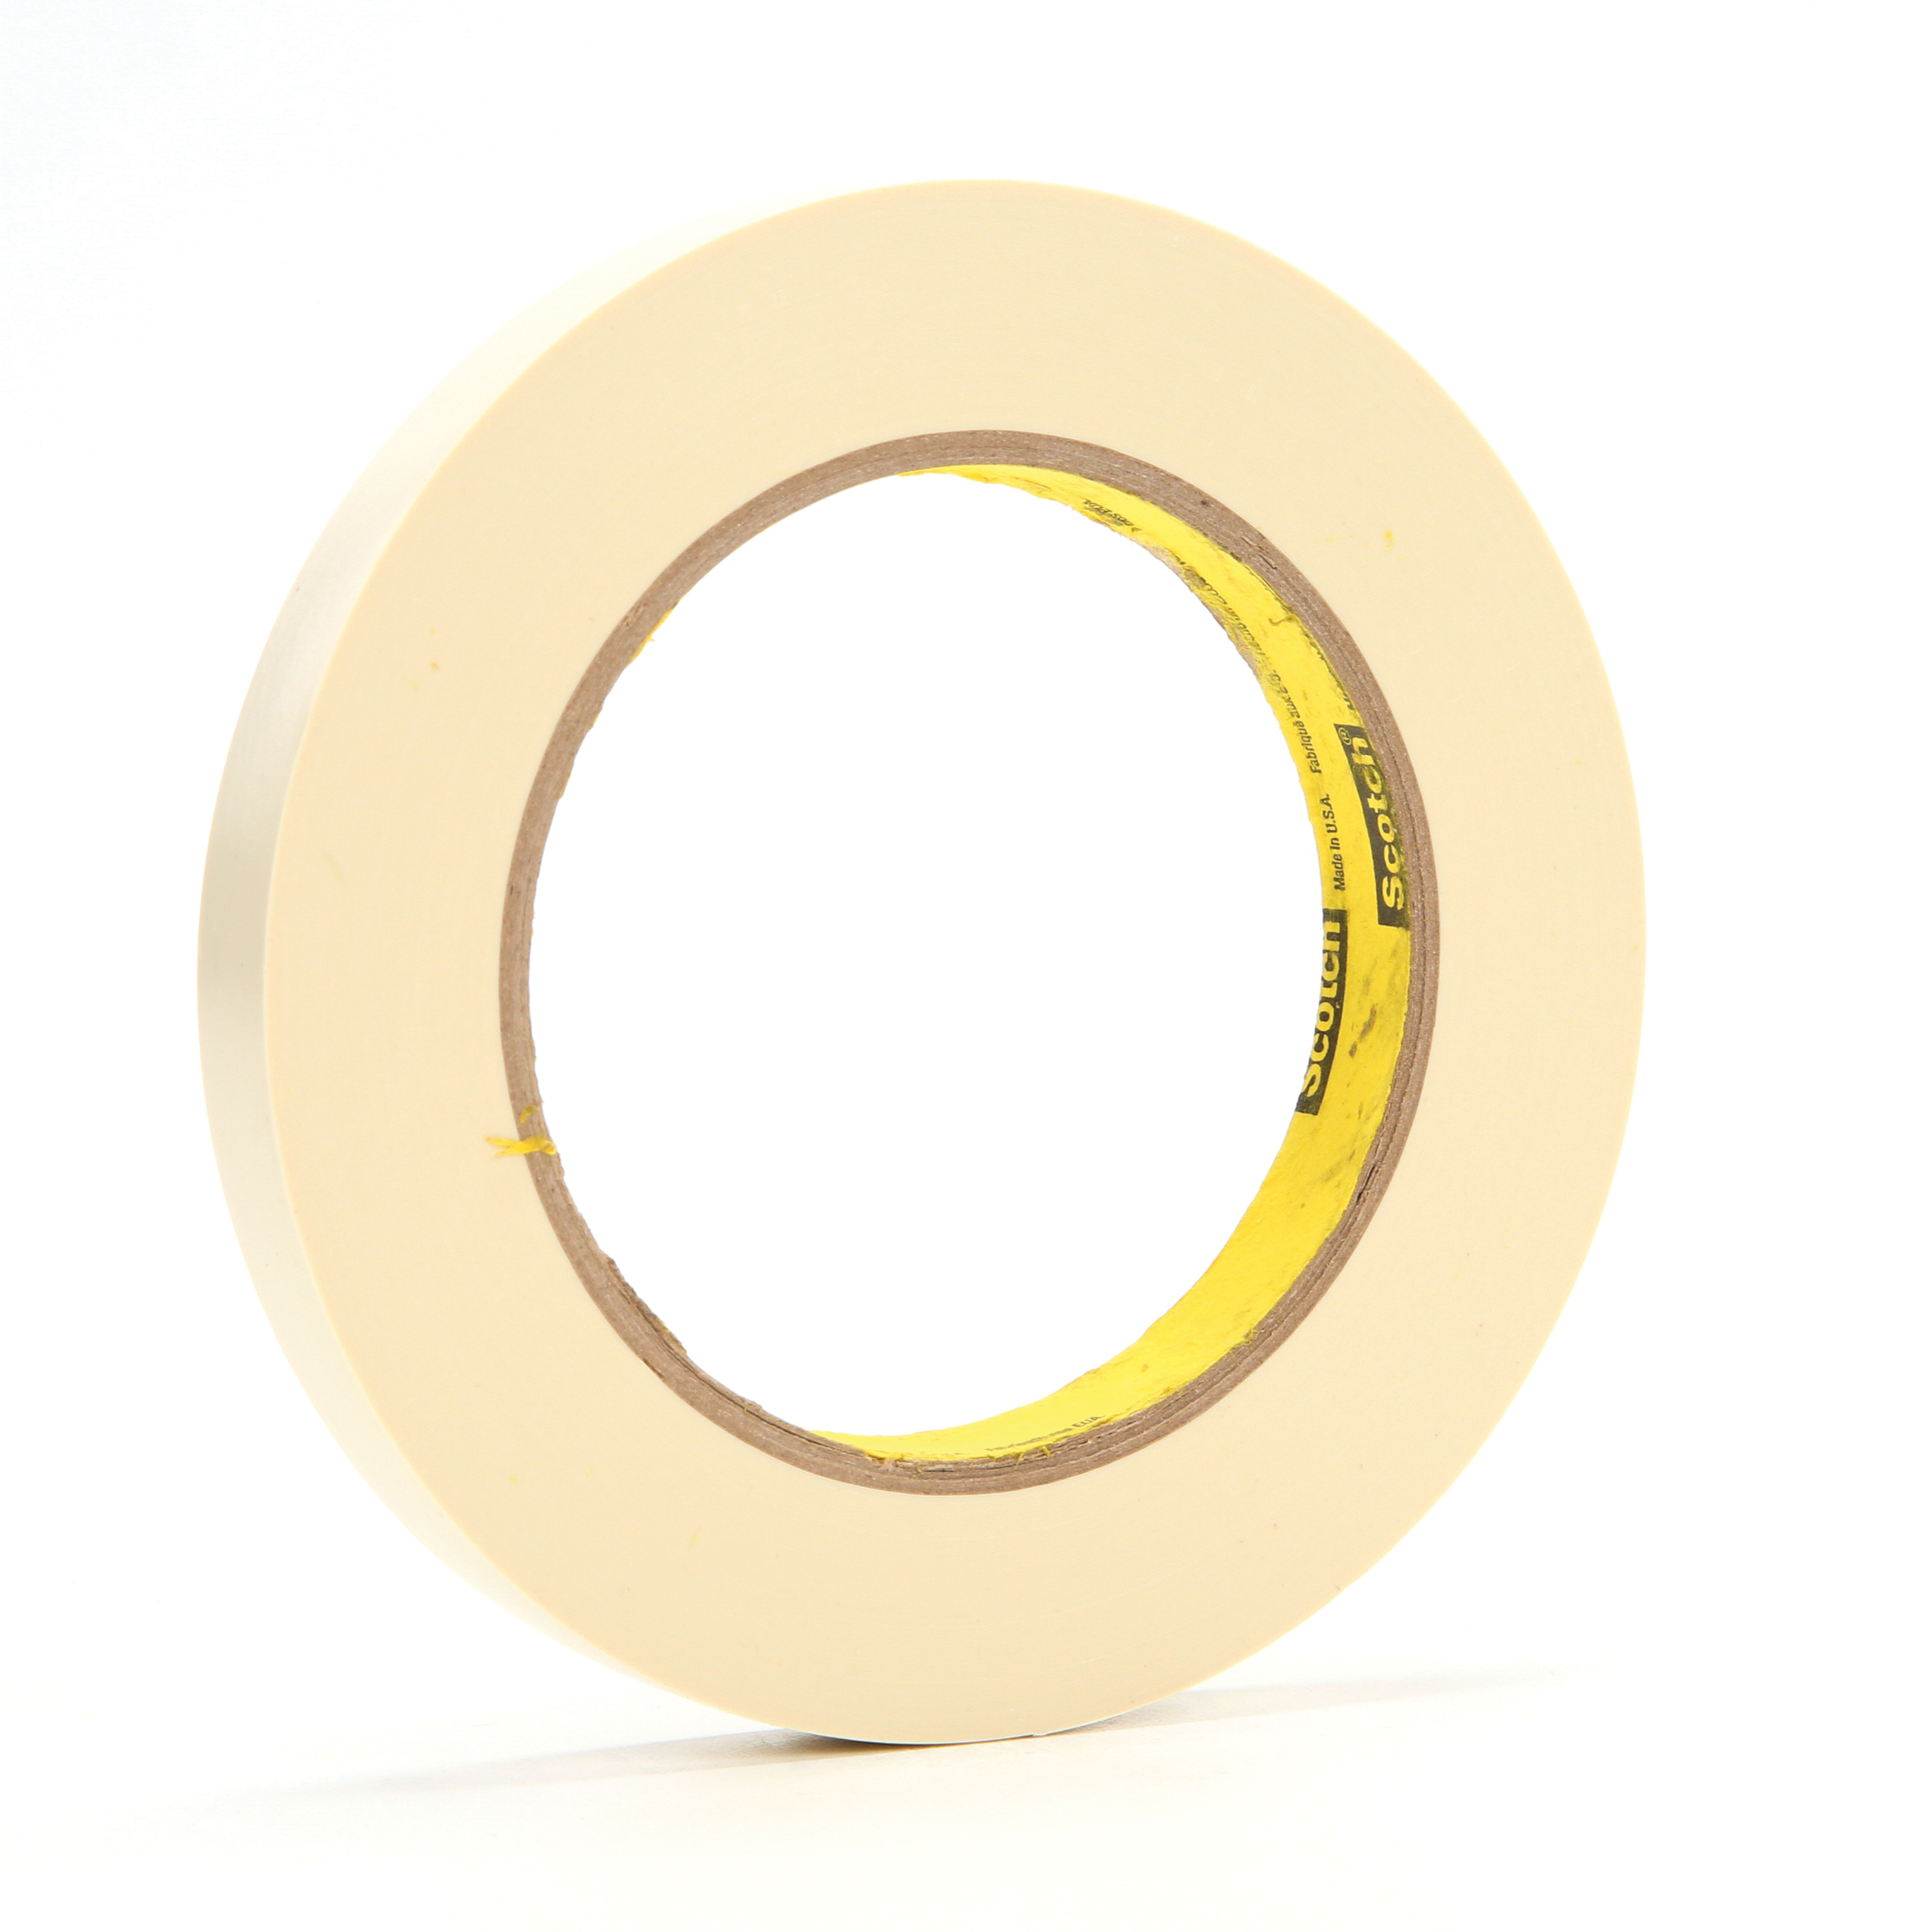 3M™ 021200-85614 Electroplating Tape, 36 yd L x 1/2 in W, 7.1 mil THK, Rubber Adhesive, Vinyl Backing